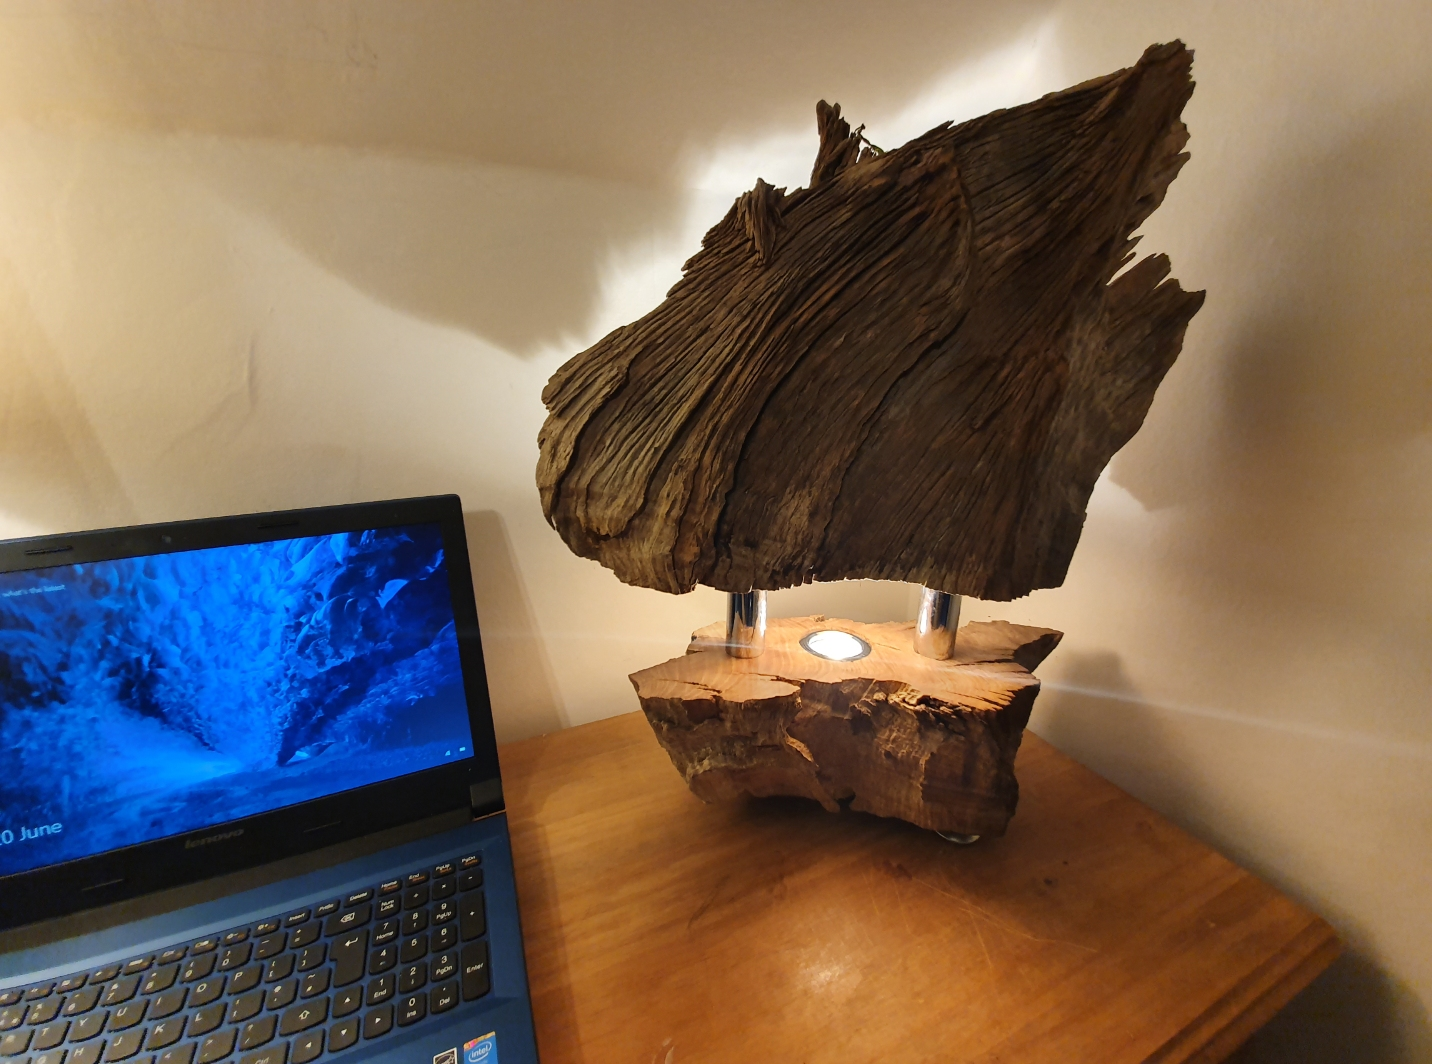 Tree Root LED lamp